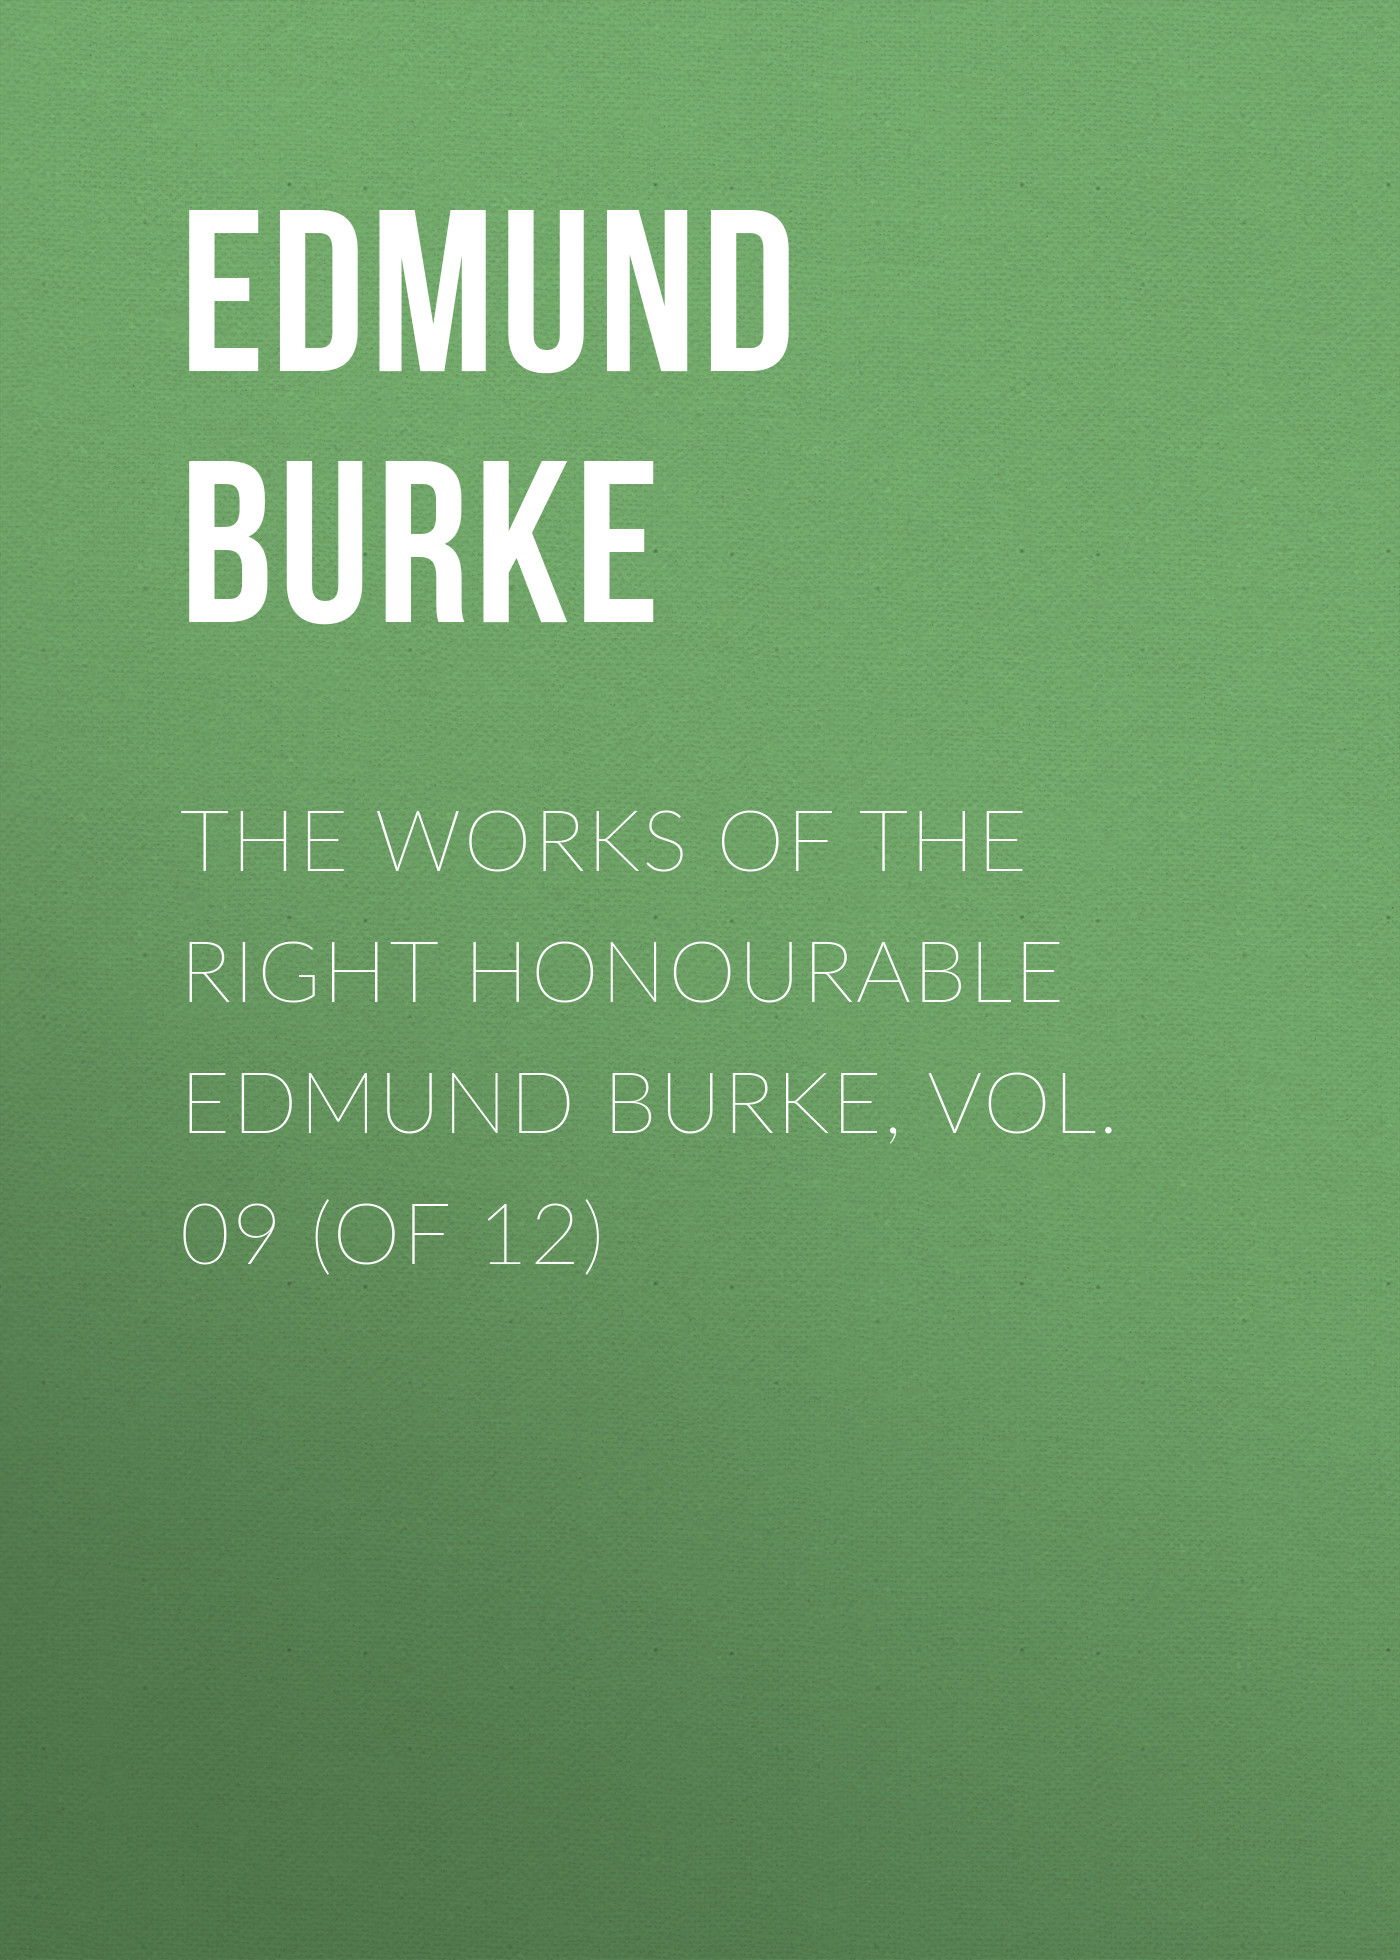 Edmund Burke The Works of the Right Honourable Edmund Burke, Vol. 09 (of 12) edmund burke the works of the right honourable edmund burke vol 02 of 12